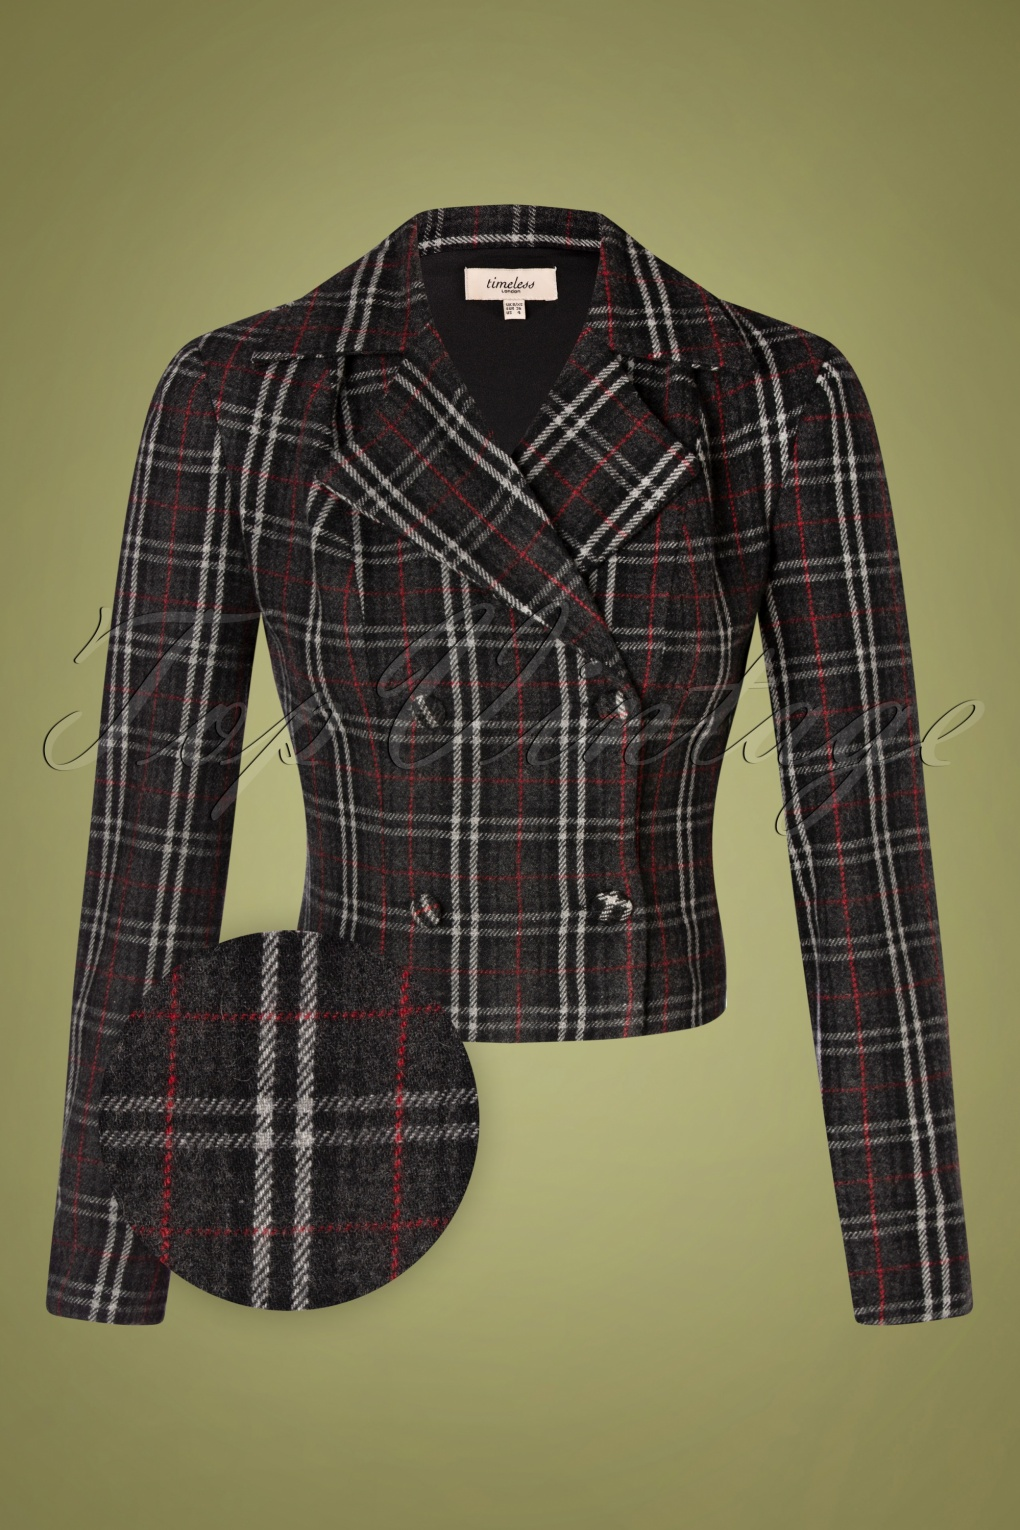 Vintage Coats & Jackets | Retro Coats and Jackets 40s Celia Cropped Wool Jacket in Charcoal and Red £72.43 AT vintagedancer.com